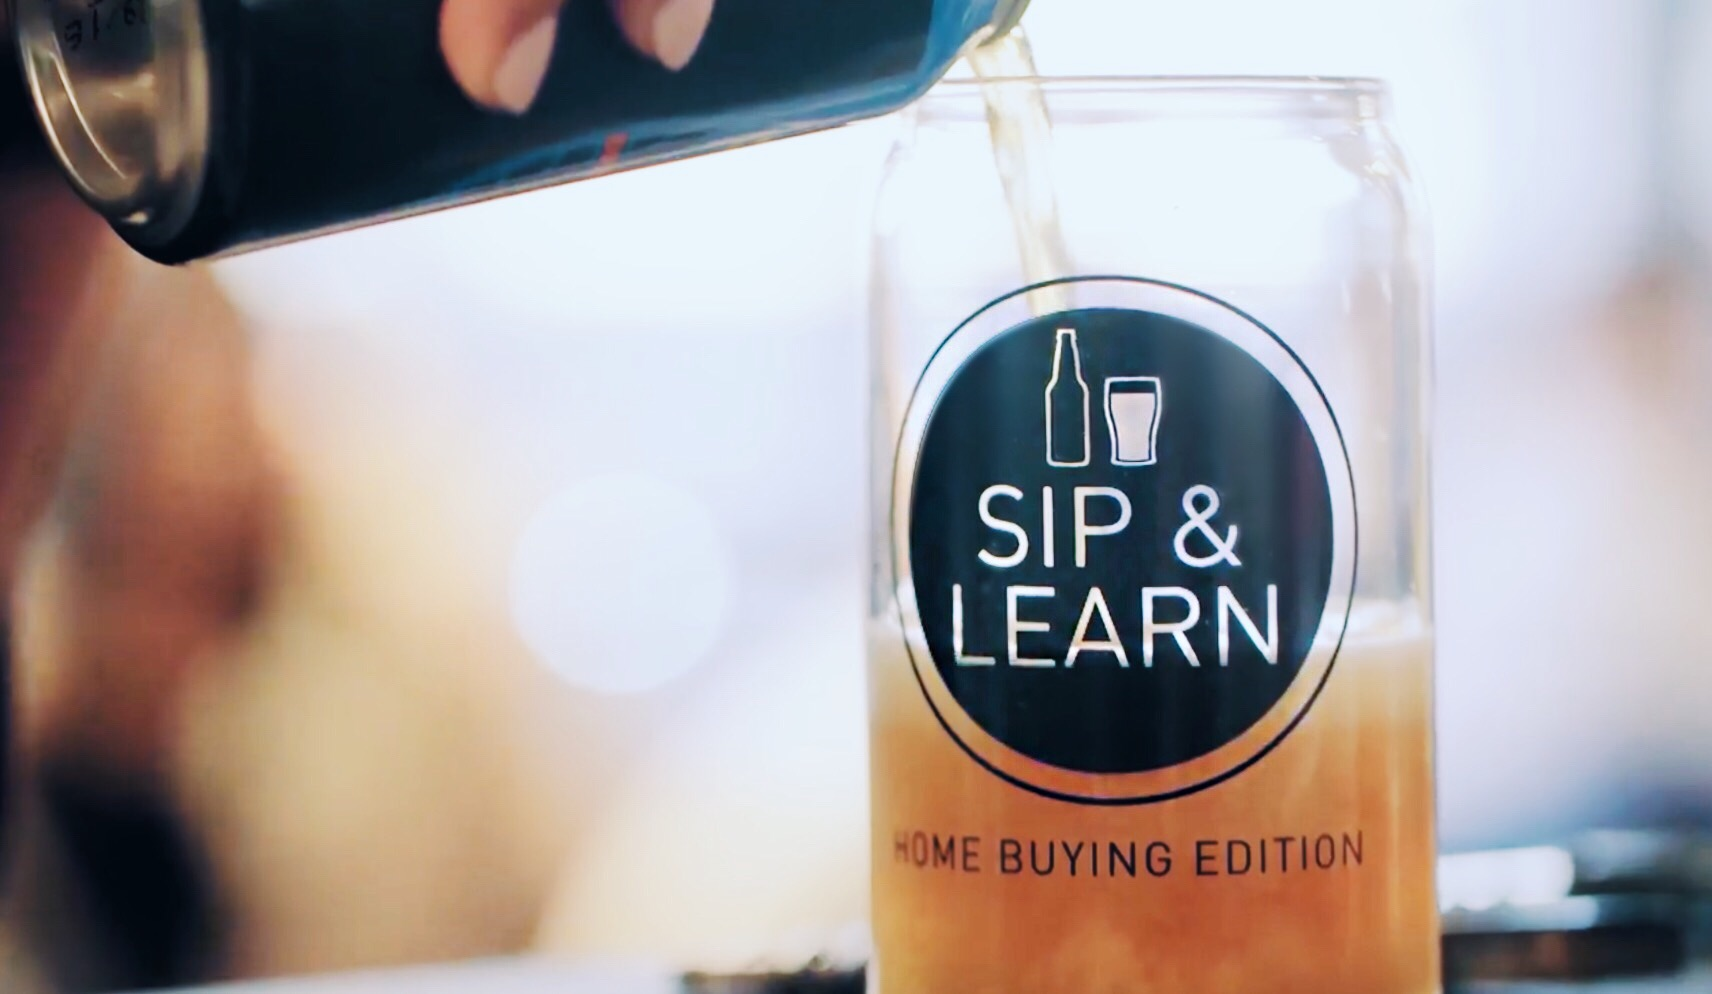 sip-learn-home-buying-edition-chicago-kourtney-murray.jpg